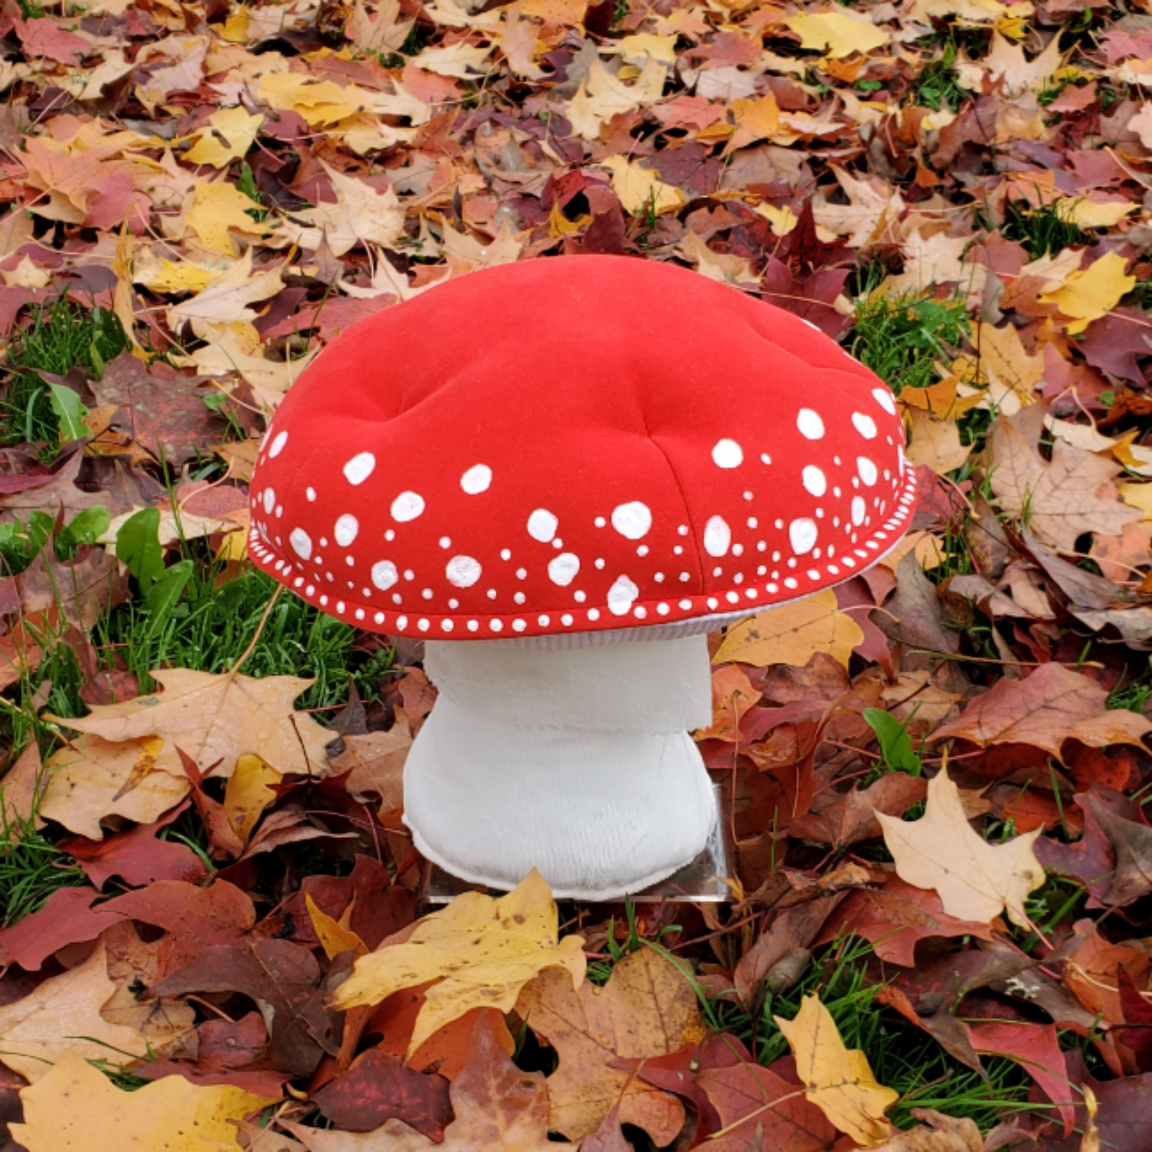 Autumn leaves mushroom red amanita